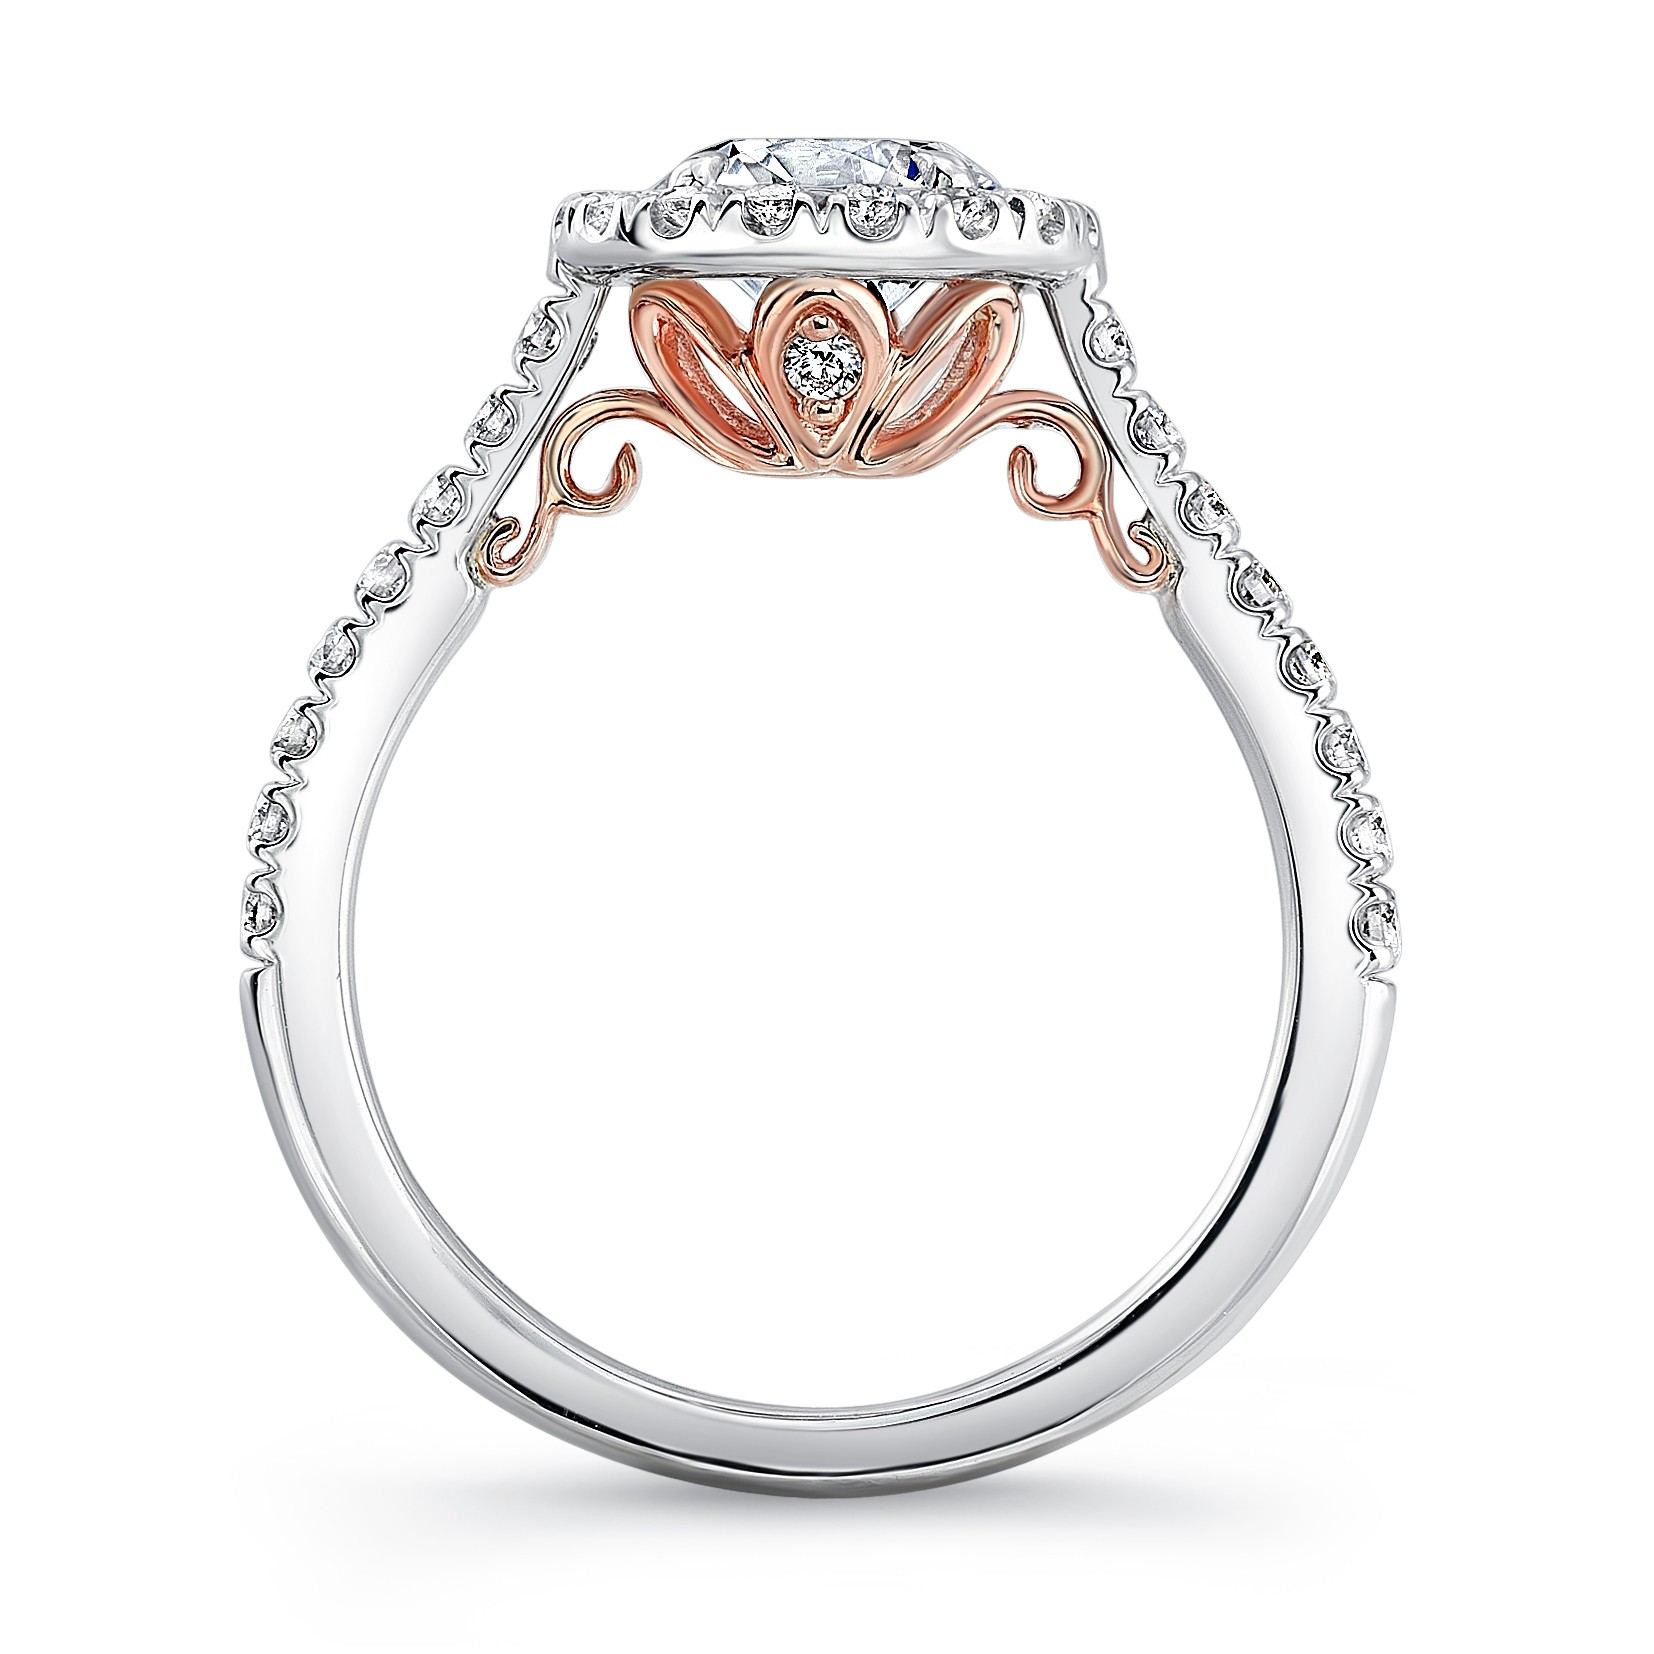 Uneek Fiorire Round Diamond Amp Cushion Halo Engagement Ring